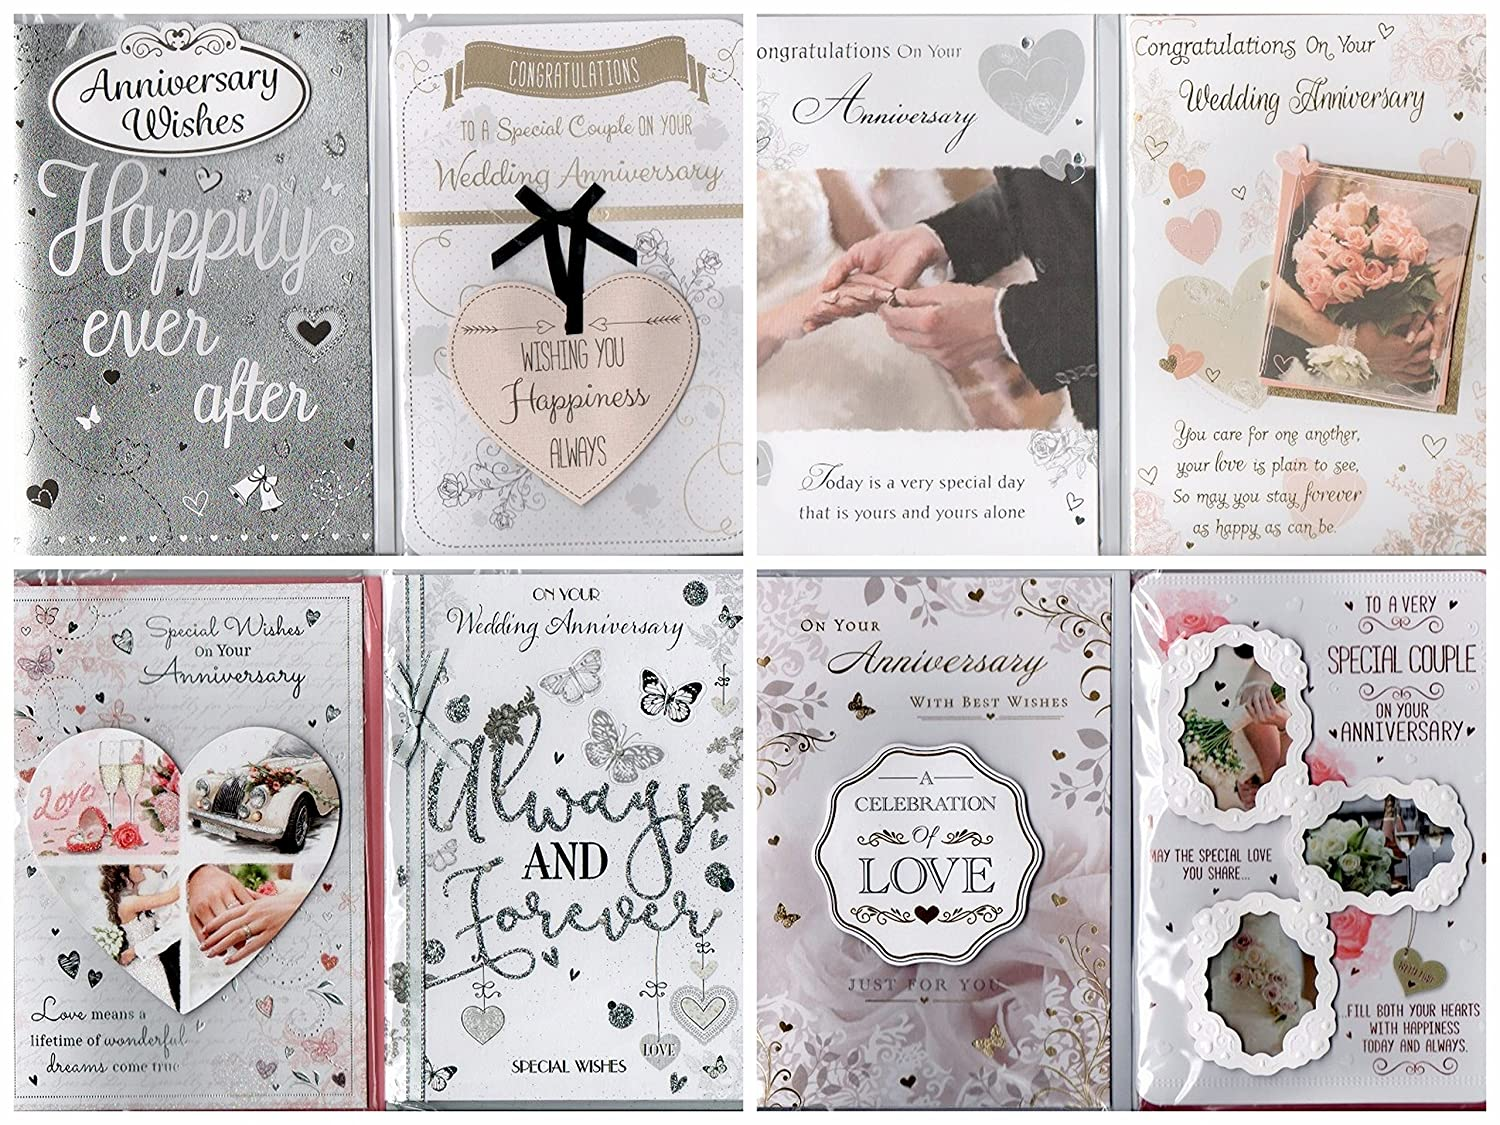 8 Assorted Contemporary Wedding Anniversary Cards & Envelopes. Greetingles Mixed Pack